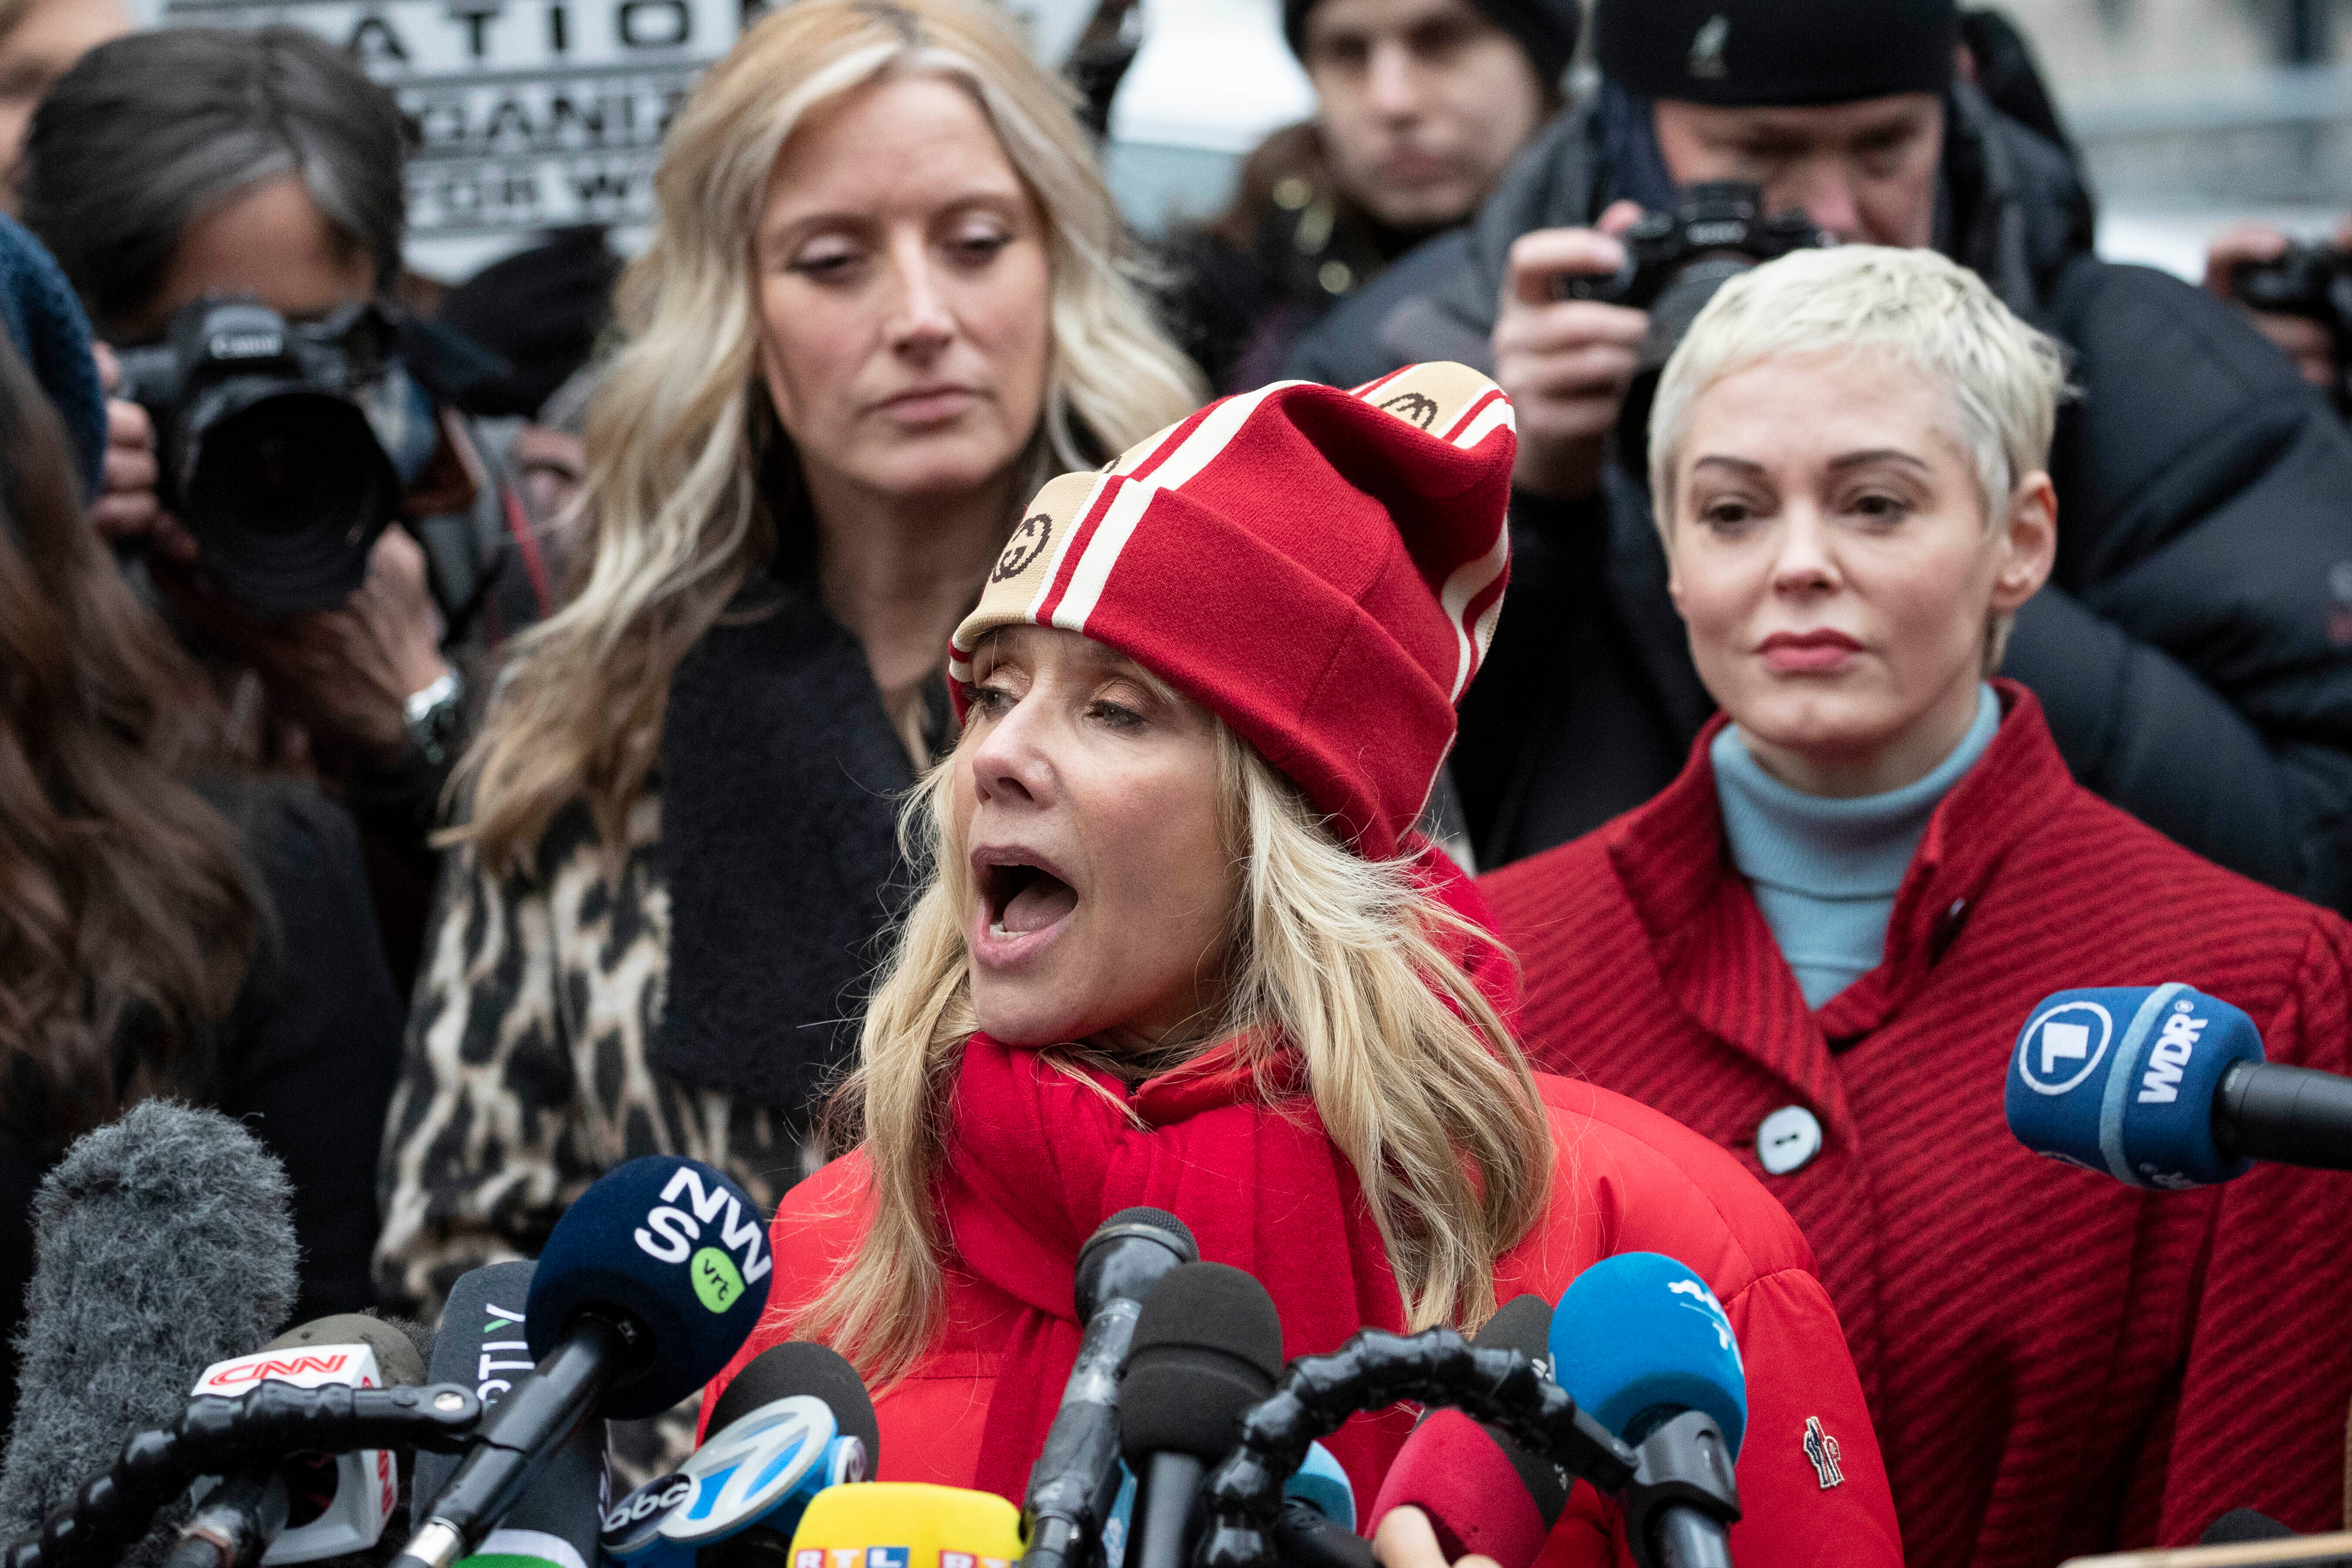 Actor Rosanna Arquette speaks at a news conference outside a Manhattan courthouse after the arrival of Harvey Weinstein, in New York. Weinstein is on trial on charges of rape and sexual assault, more than two years after a torrent of women began accusing him of misconductSexual Misconduct Weinstein, New York, USA - 06 Jan 2020